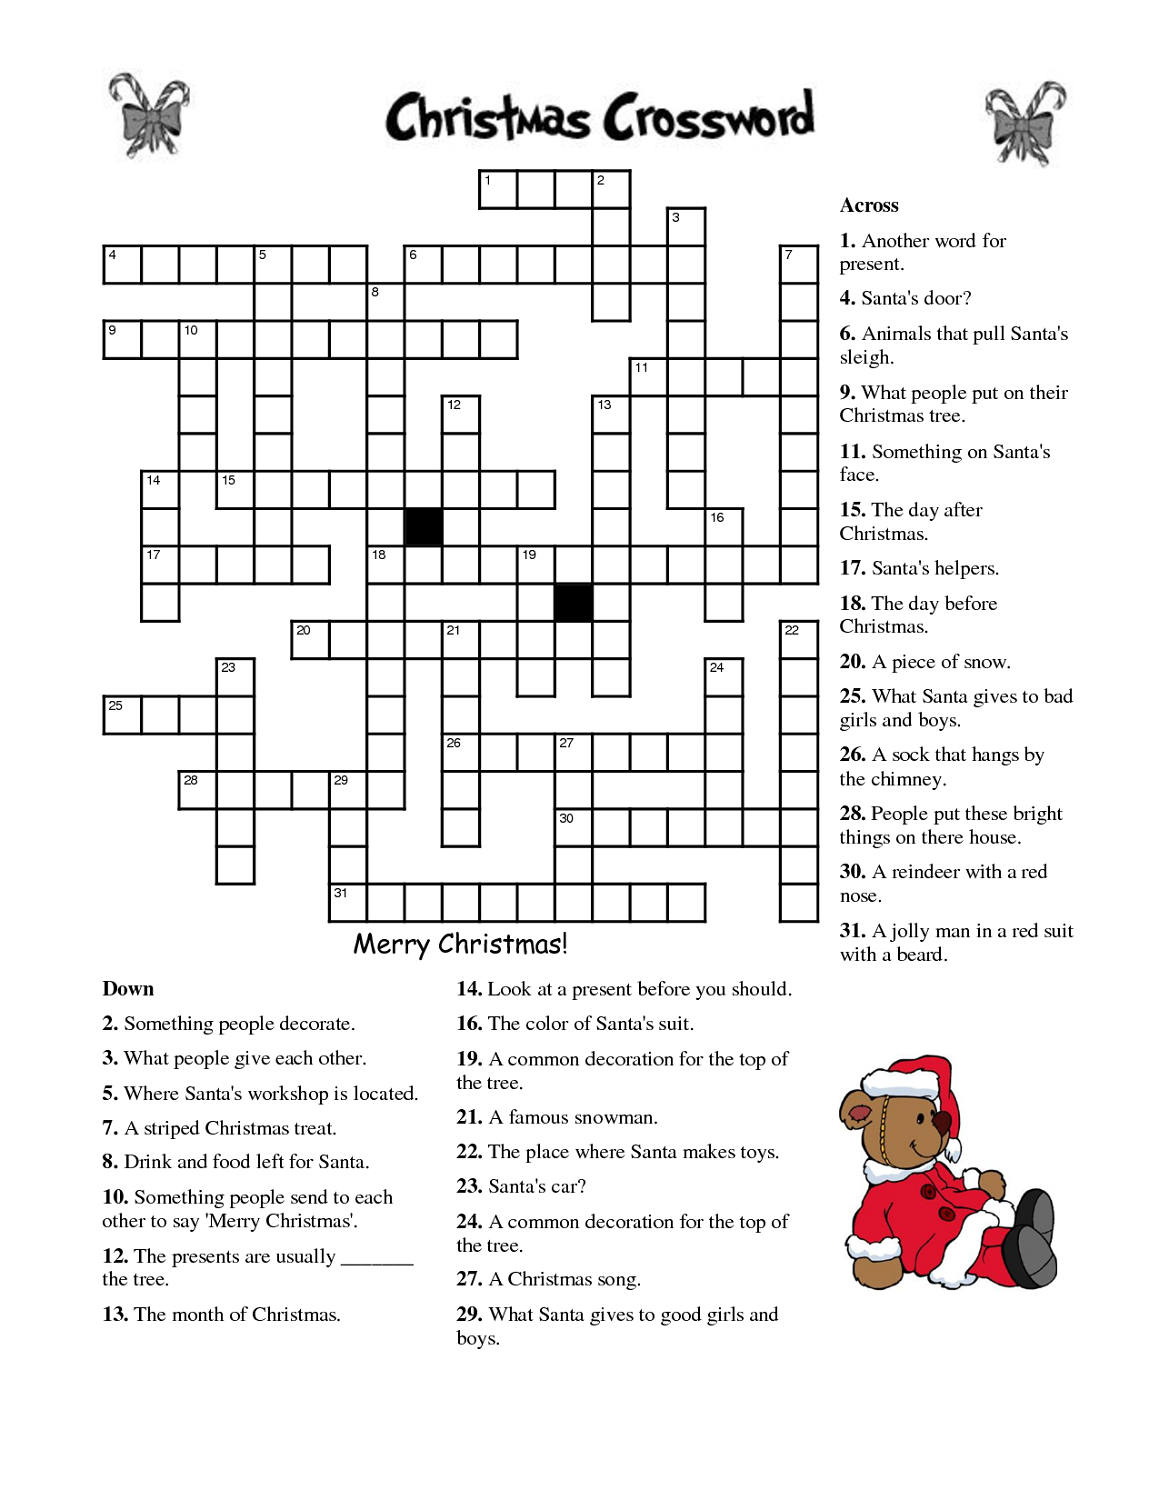 Free Printable Christmas Crossword Puzzles For Adults